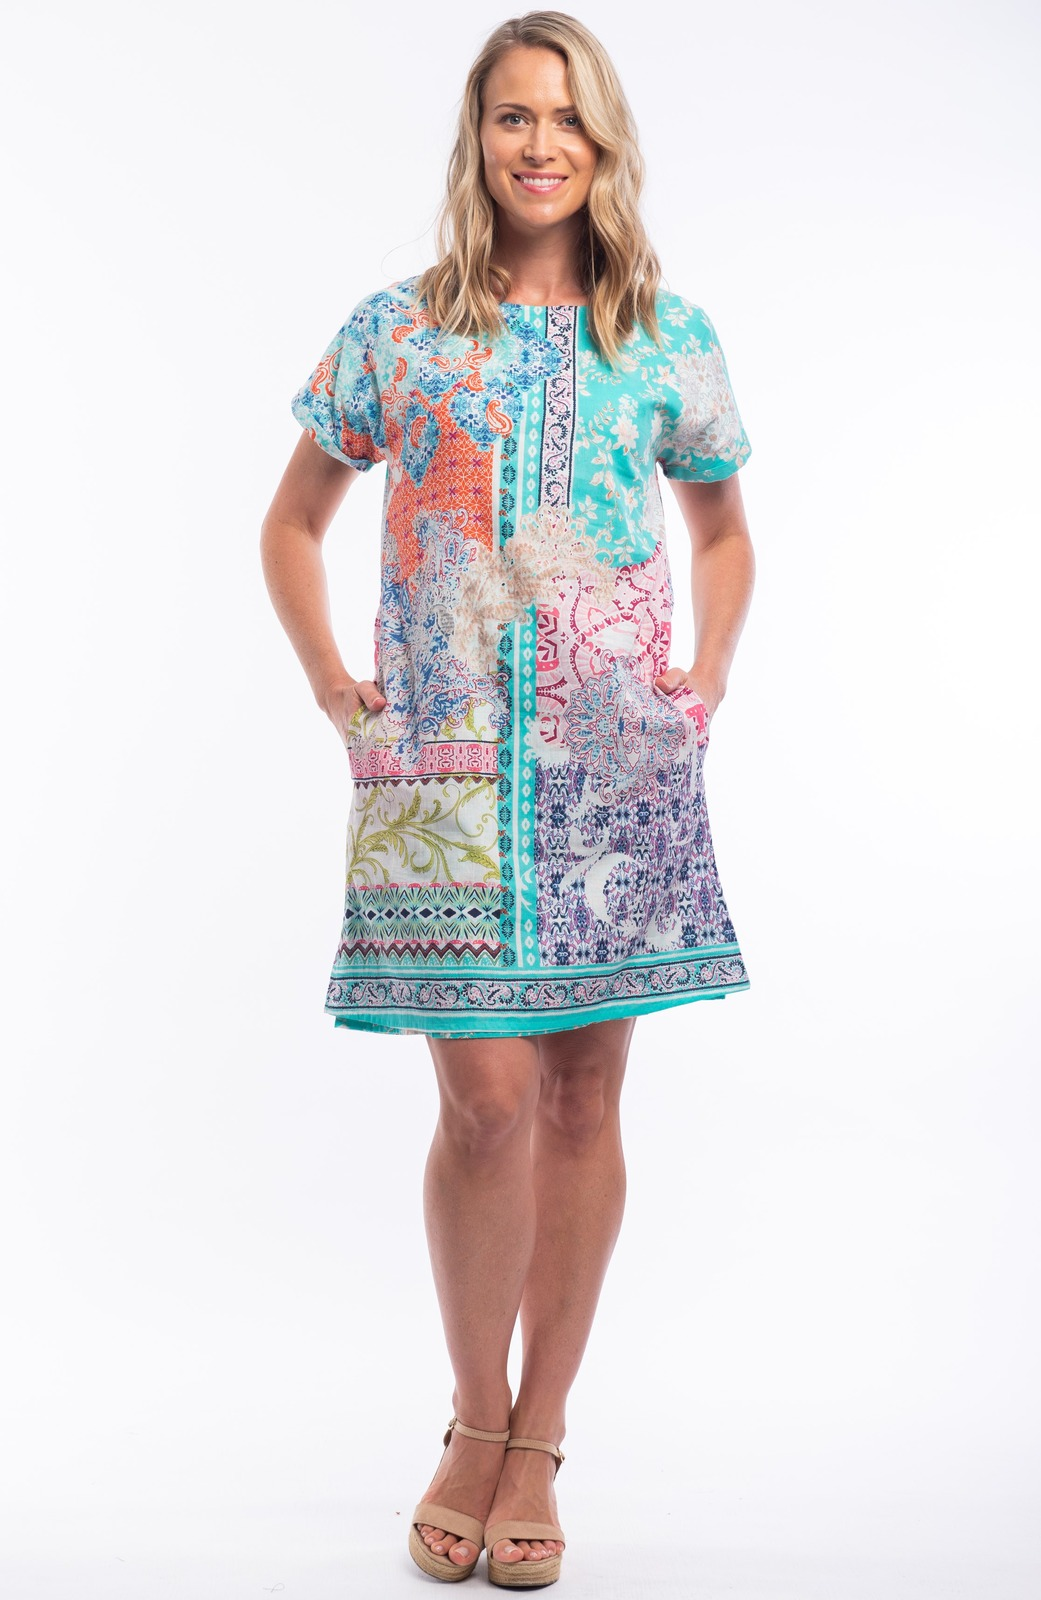 Orientique multicolor summer dress Madeira patterned